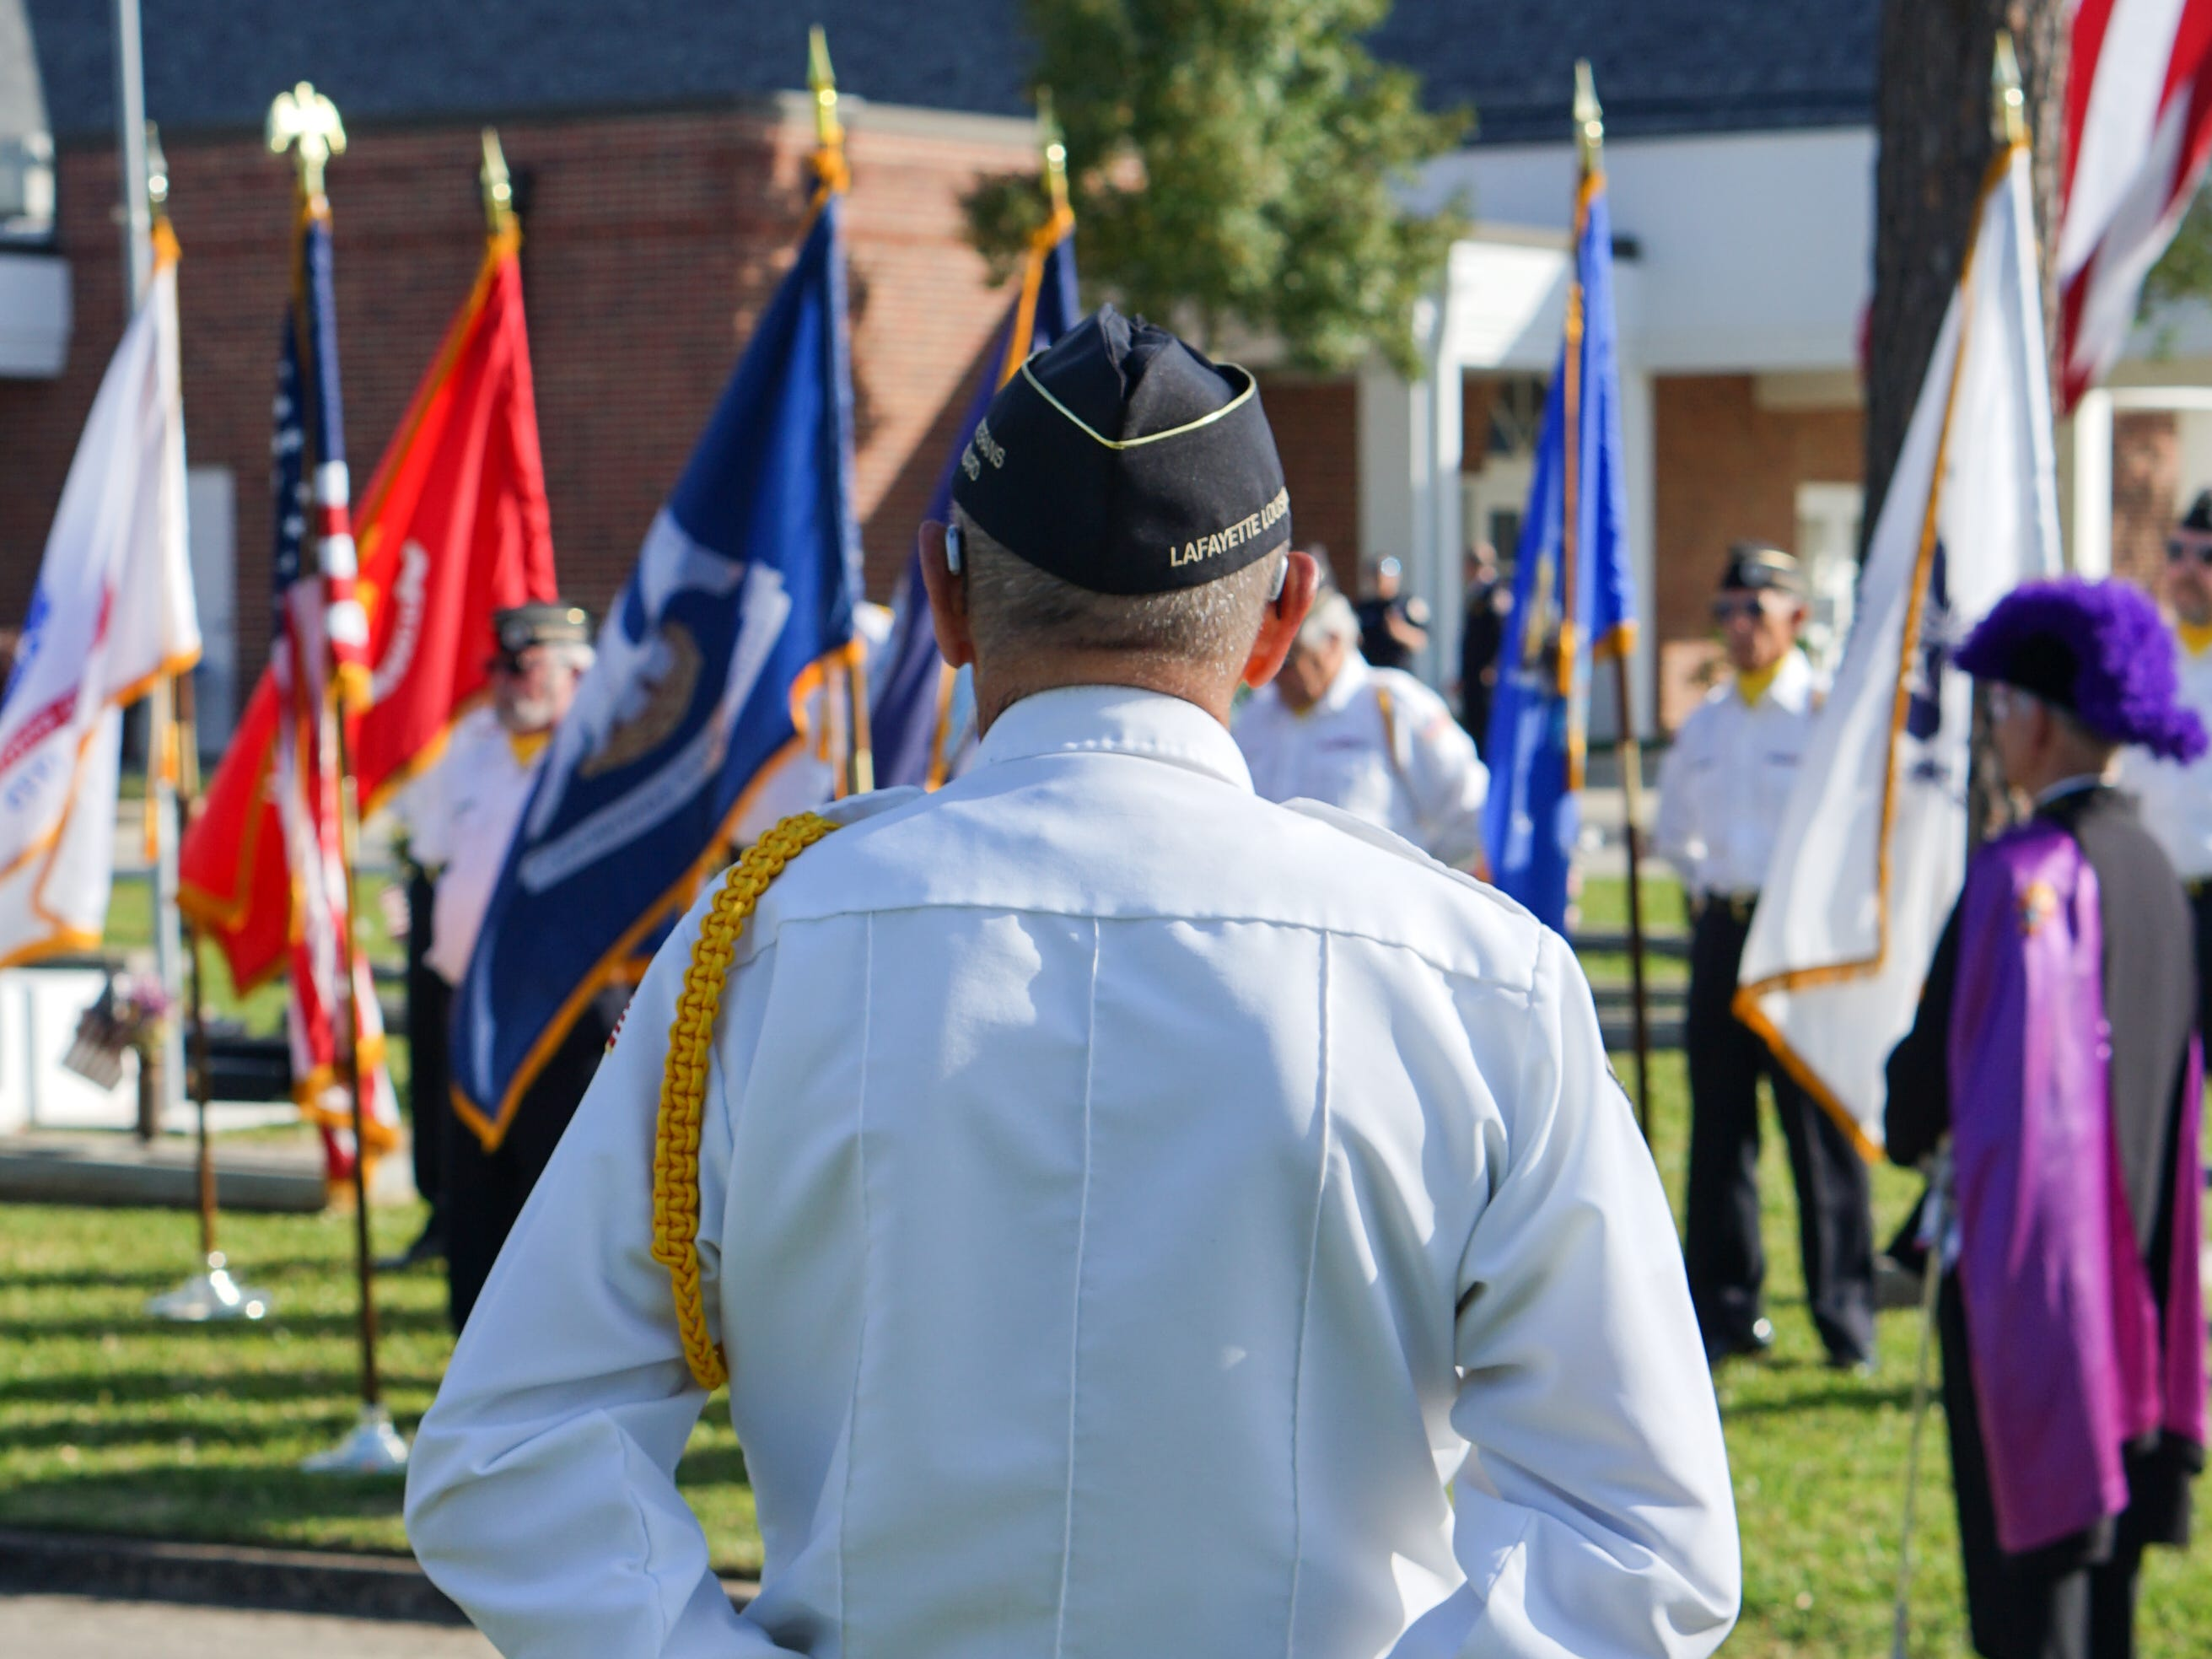 """Members of the Acadiana Veterans Honor Guard standby during the """"Welcome Home Vietnam Veterans"""" event at Fountain Memorial Funeral Home and Cemetery in Lafayette on Friday, March 29, 2019. The event honored those from the area who served in the Vietnam War."""